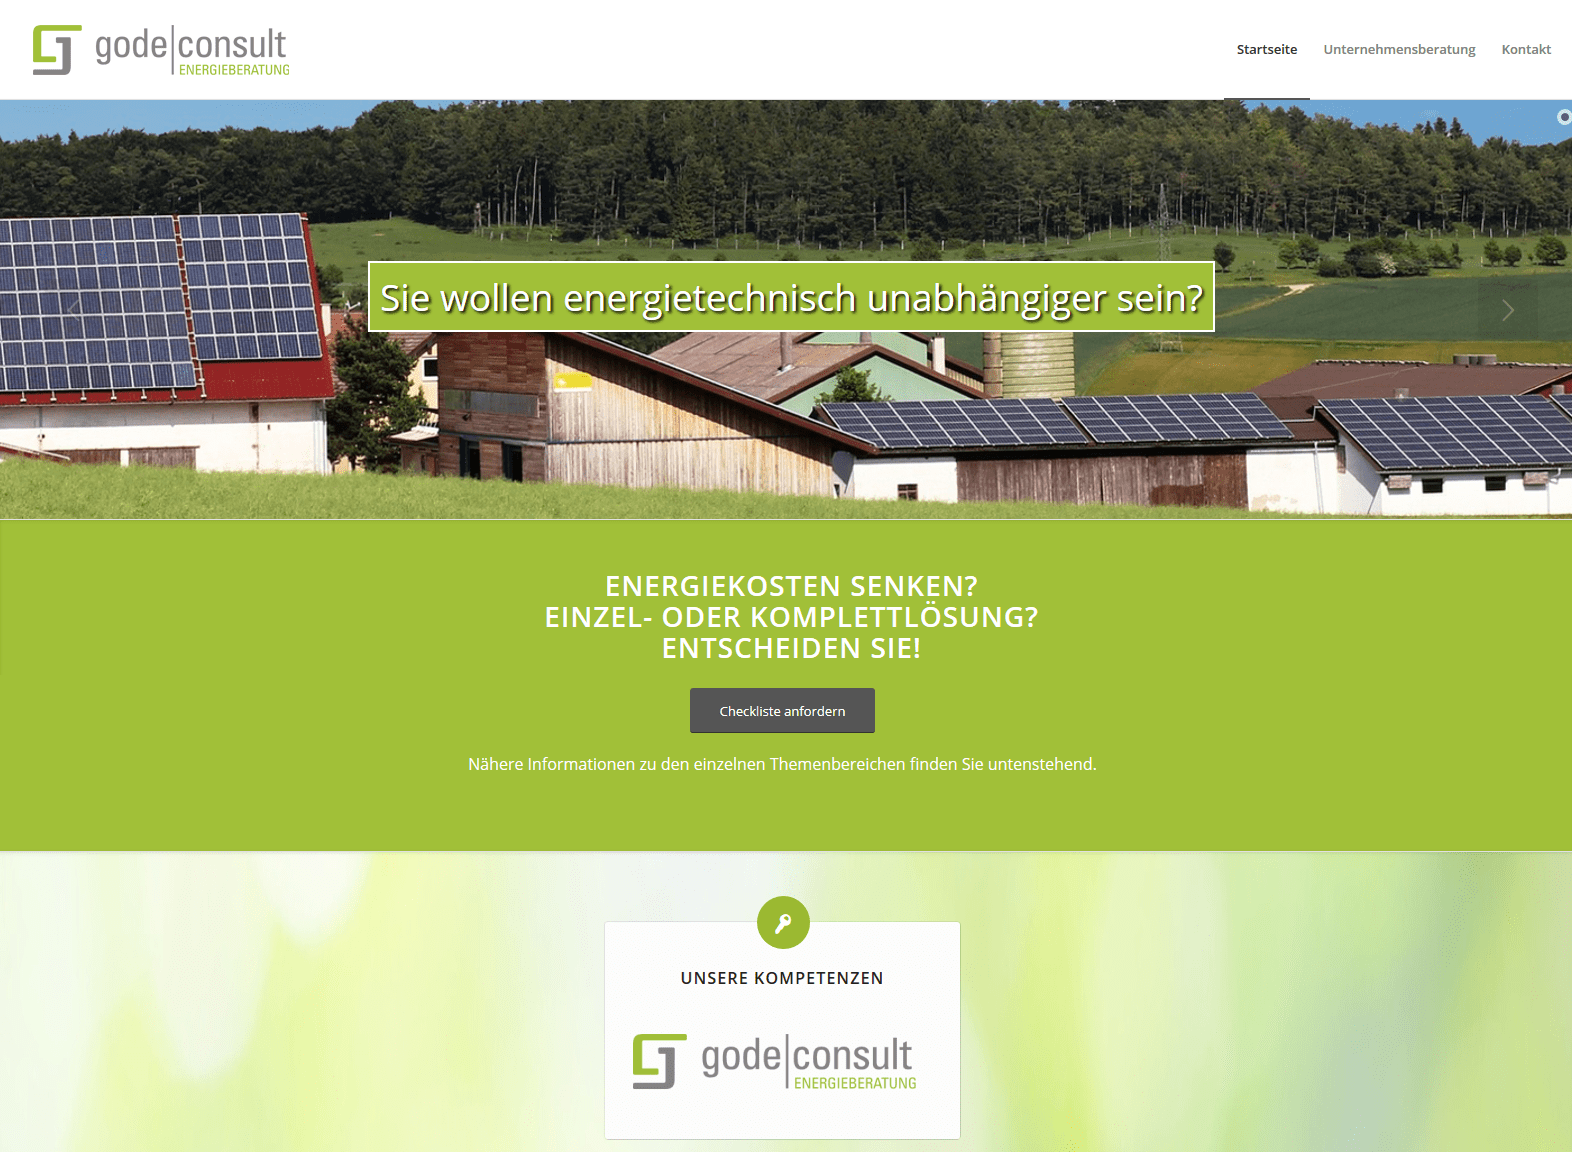 gode-consult-energie